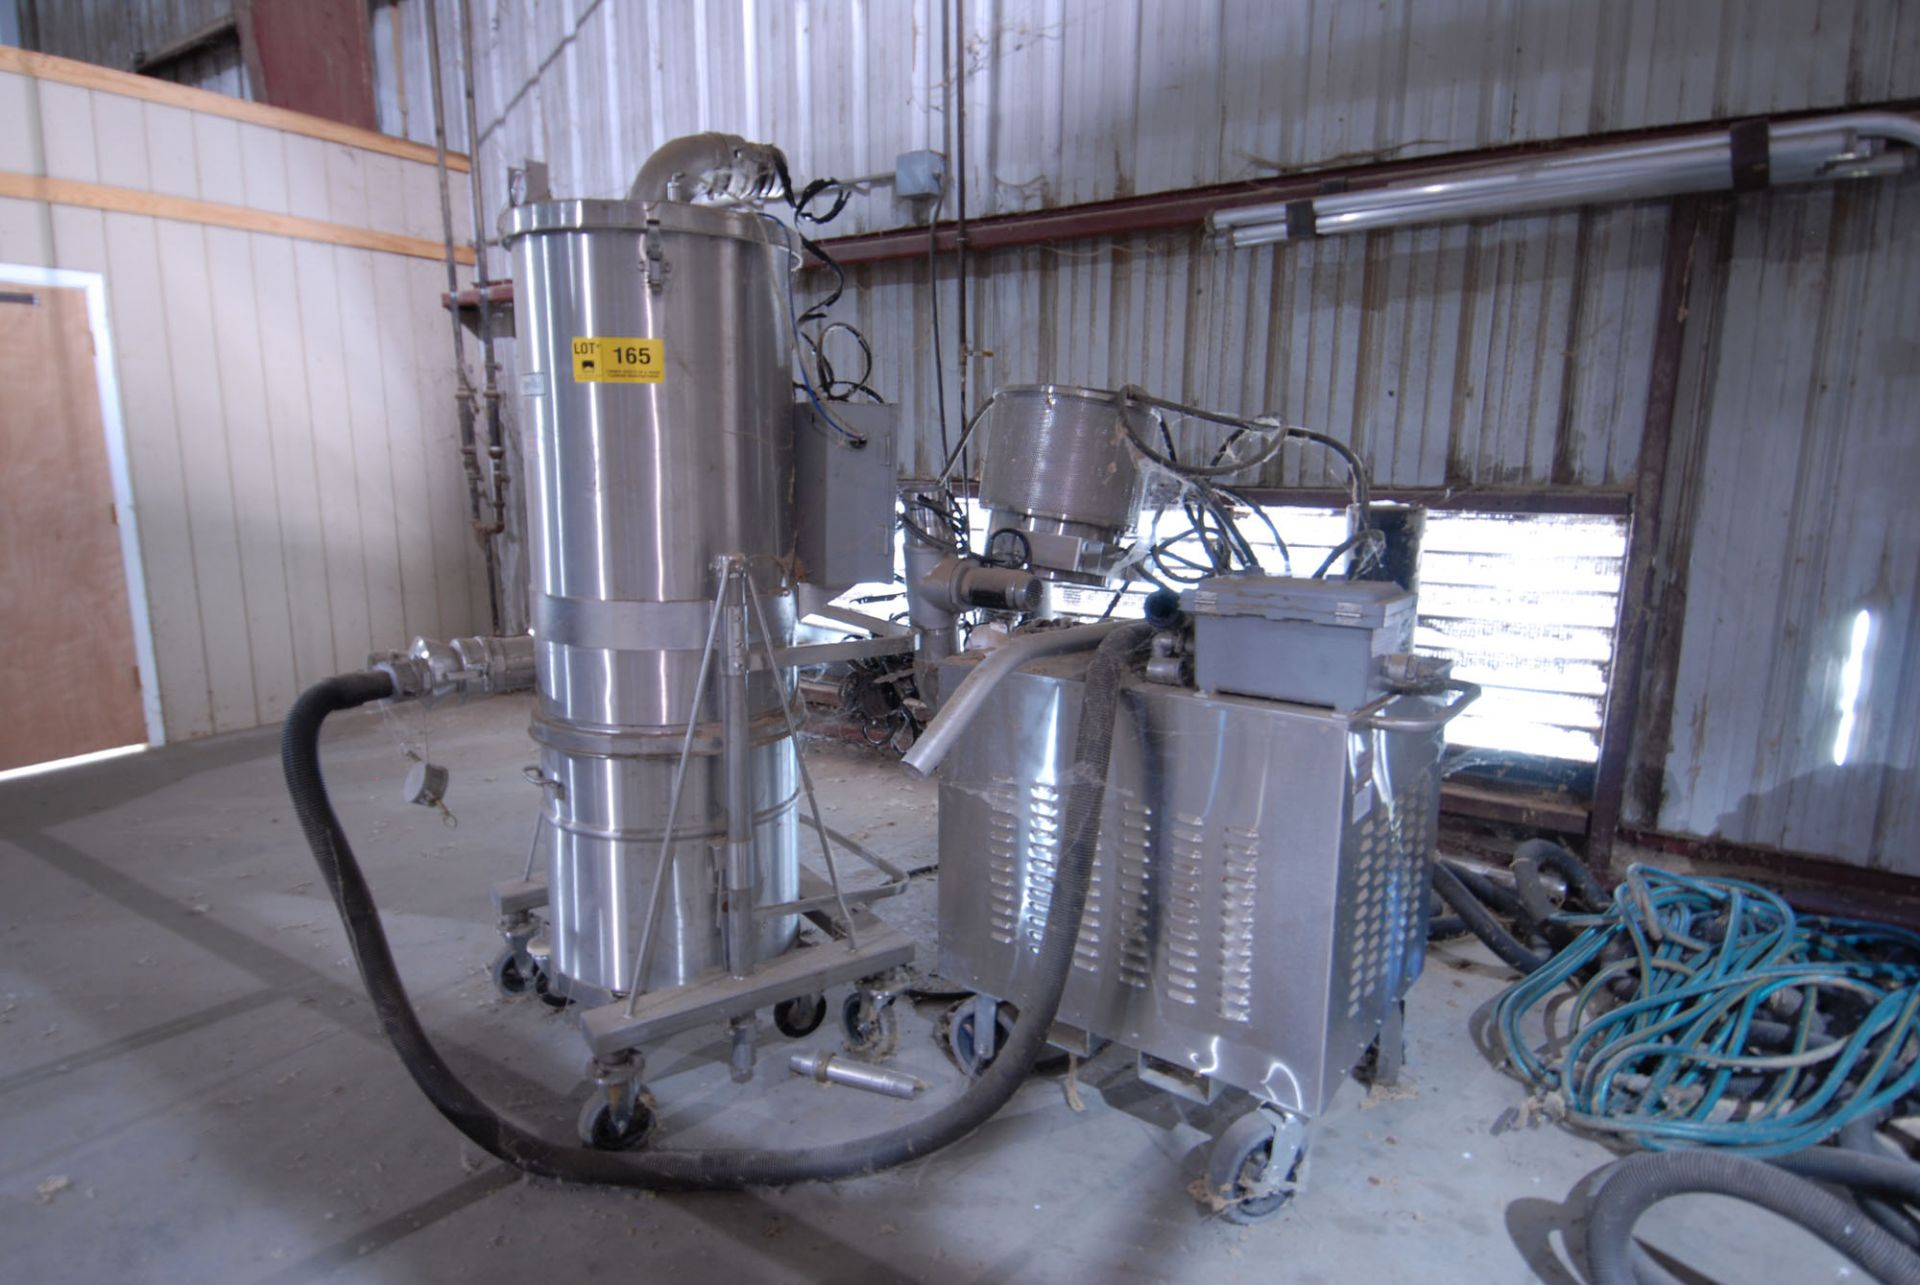 Lot 165 - TIGER-VAC CD-10FX AFS EXPLOSION PROOF VACUUM 11200WATT/15HP/460VOLTB/3PH/17AMPS/60Hz S/N: 10020256